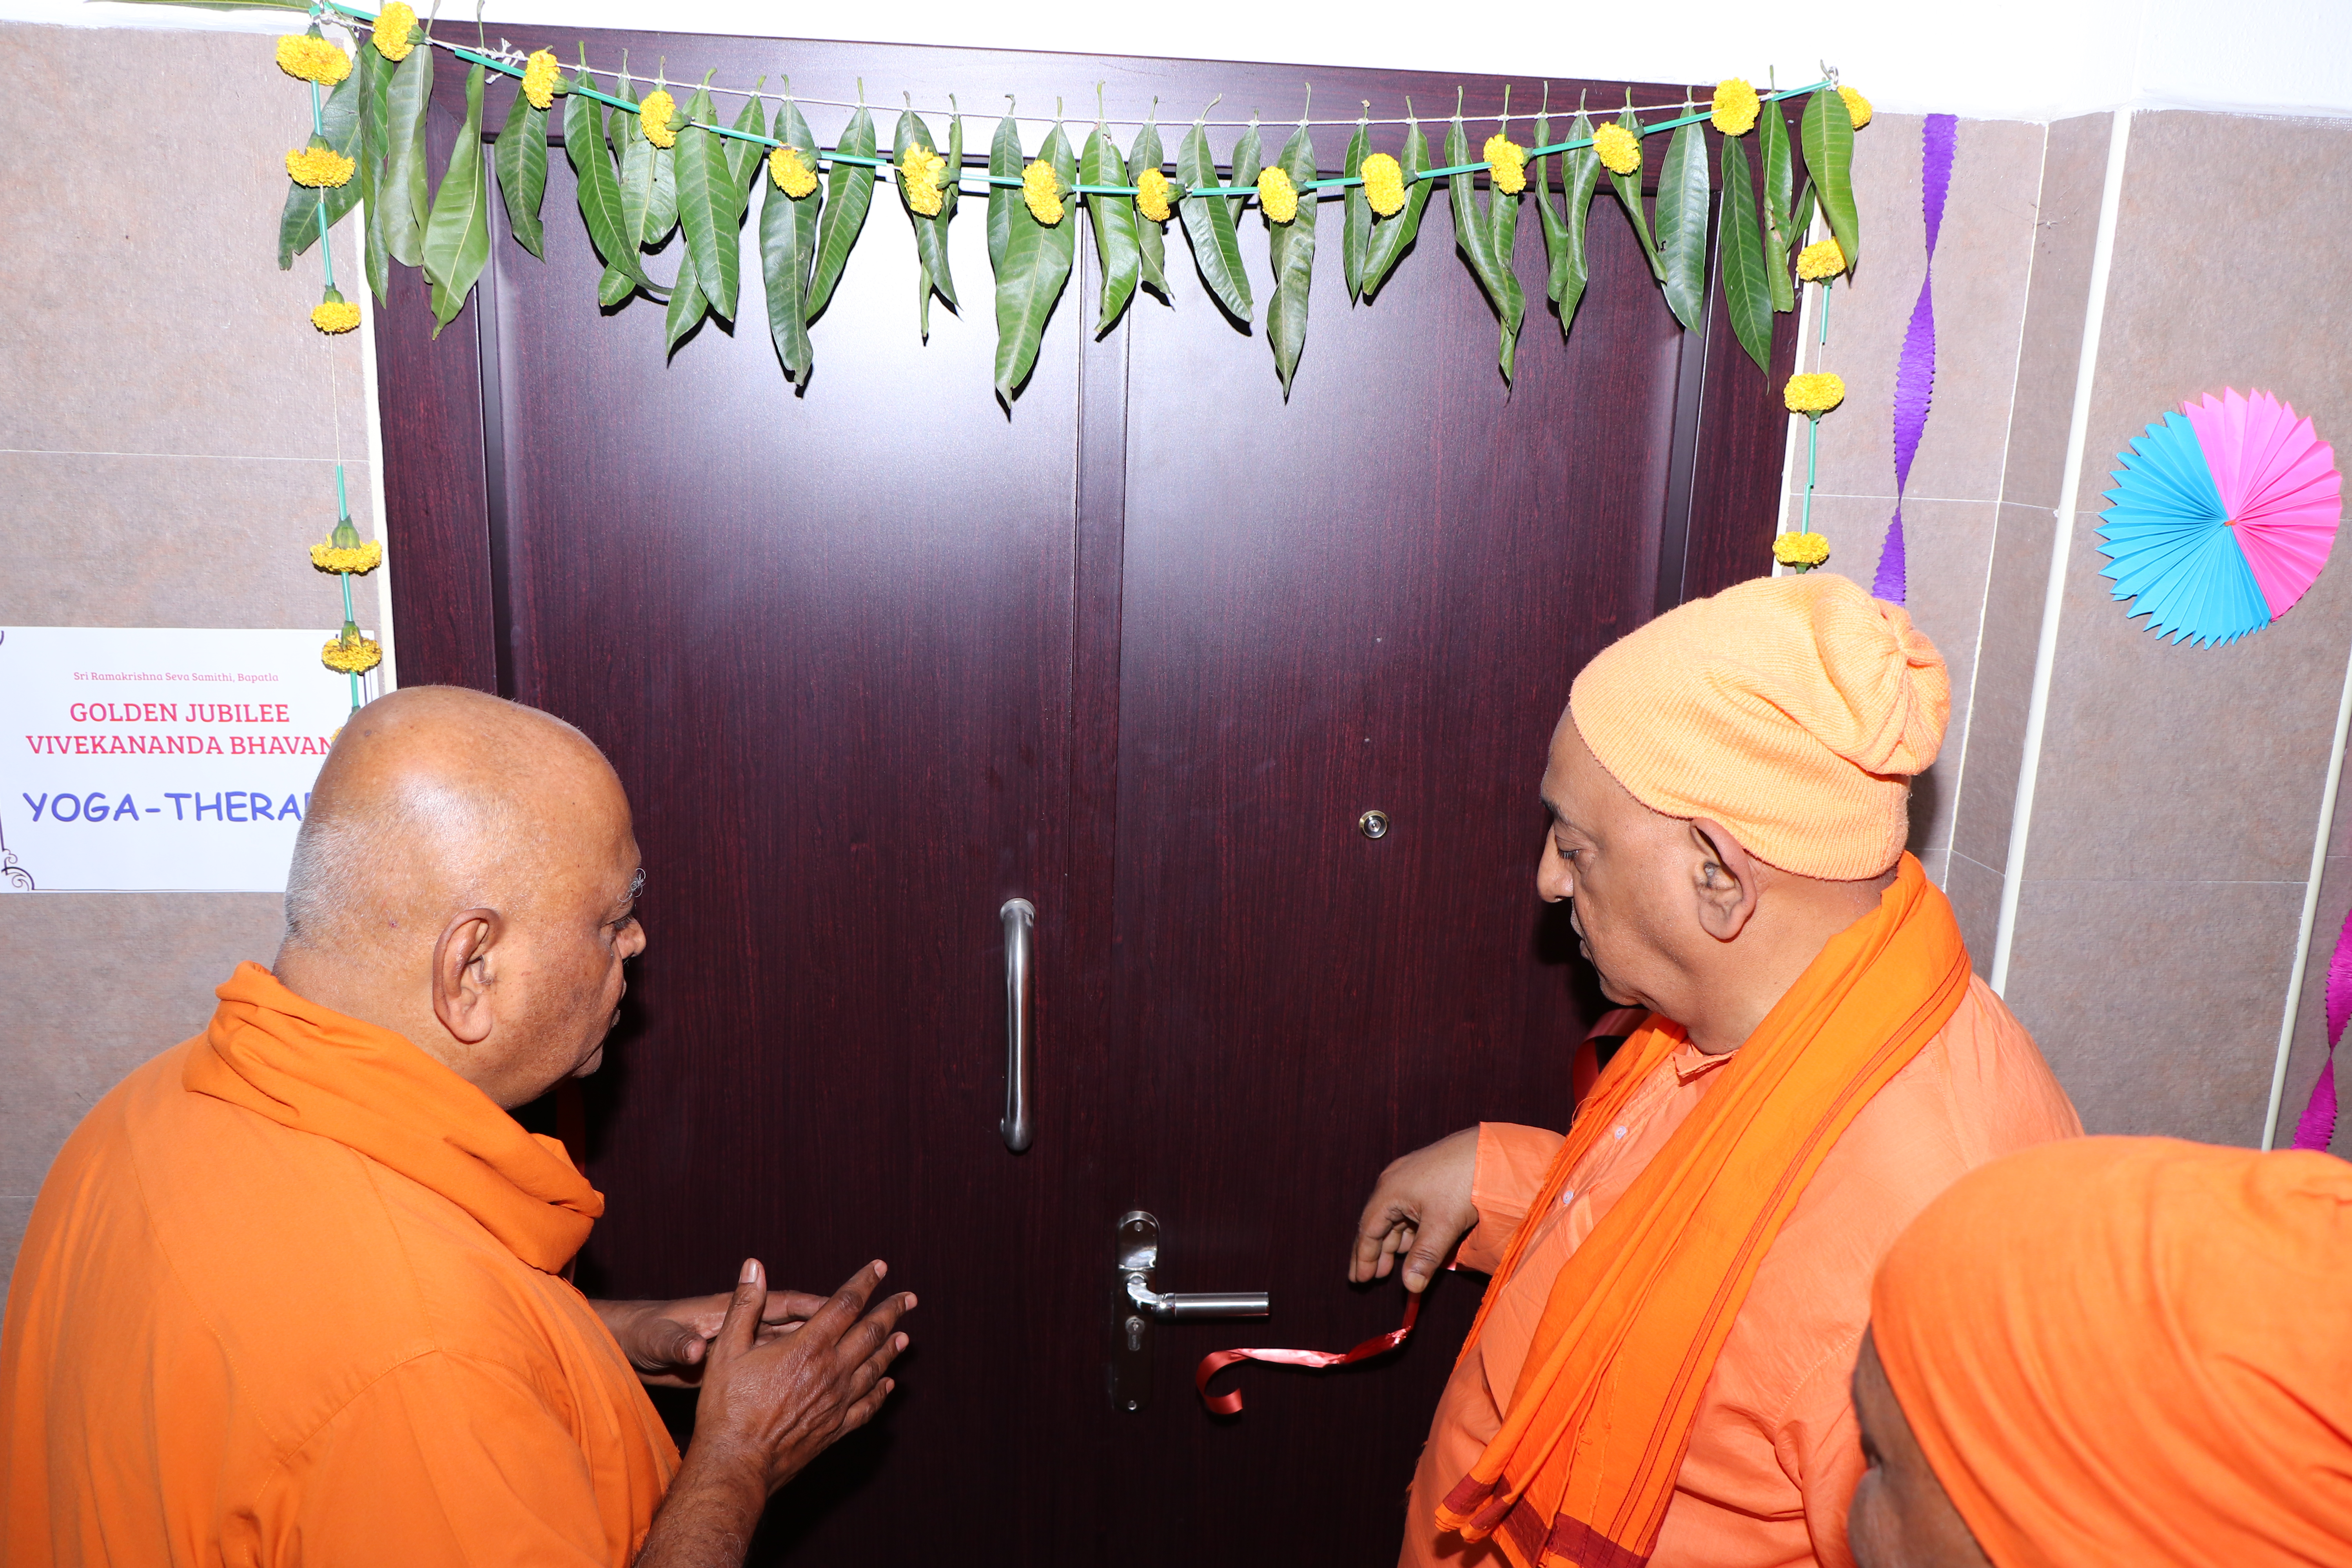 Yoga Therapy room inauguration